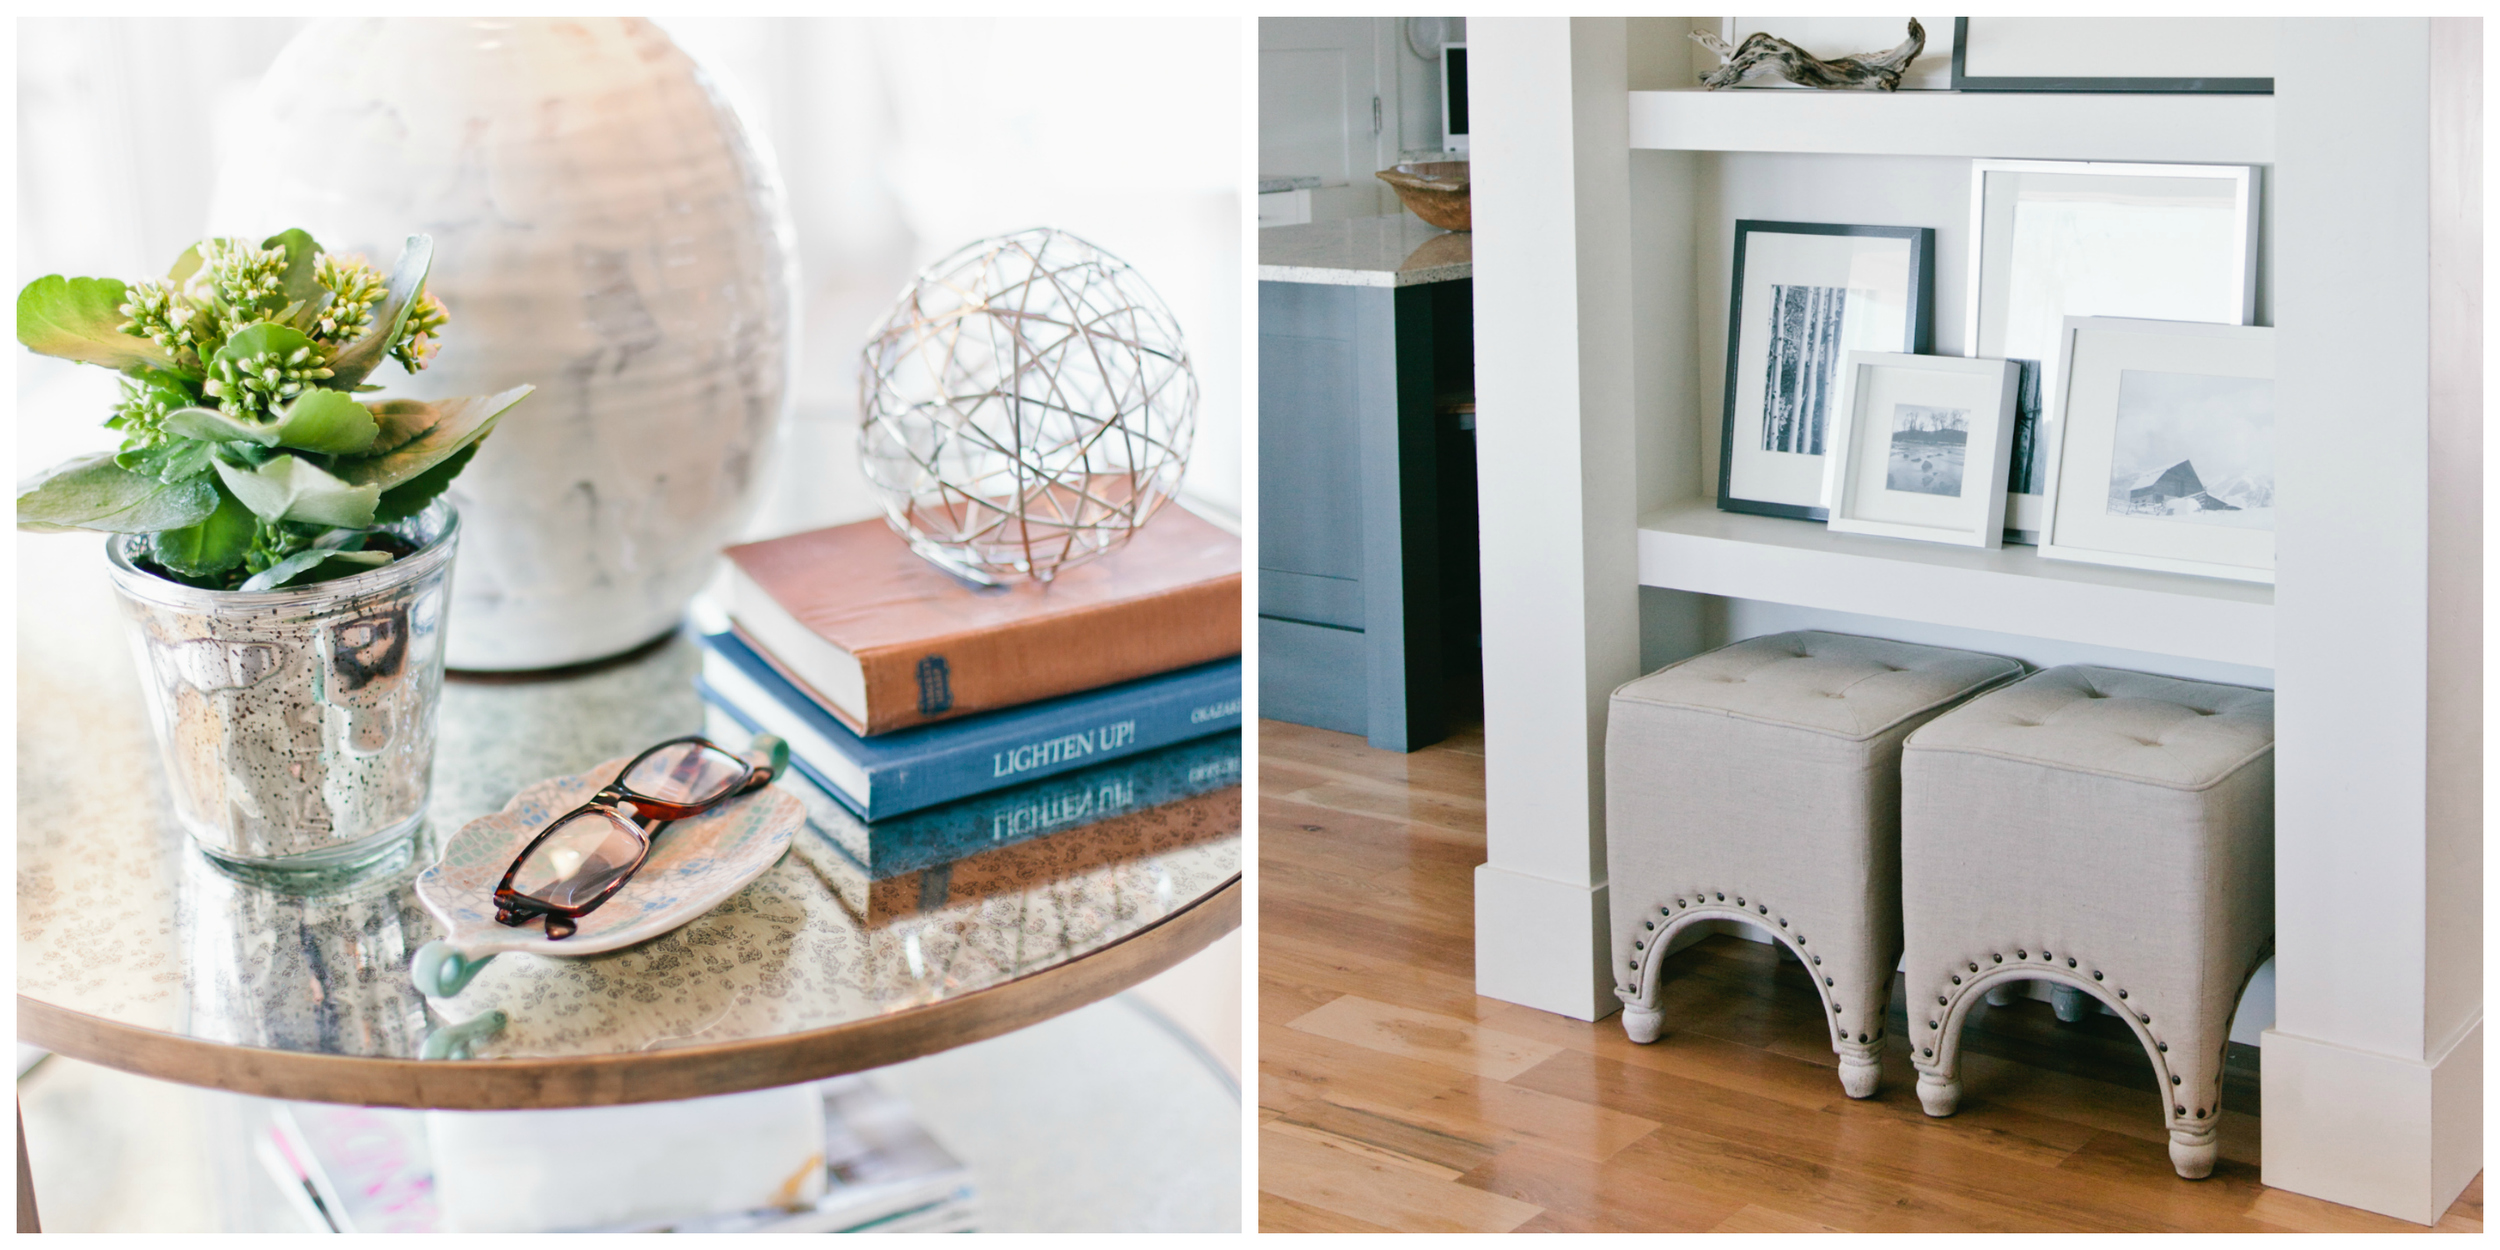 I wanted to add a touch of elegance to the laid back feel of the space, so I added a brushed brass side table with round mercury glass inlays. Linen tufted ottomans (extra seating) are conveniently tucked into a niche which displays black and white images of some of our favorite places.